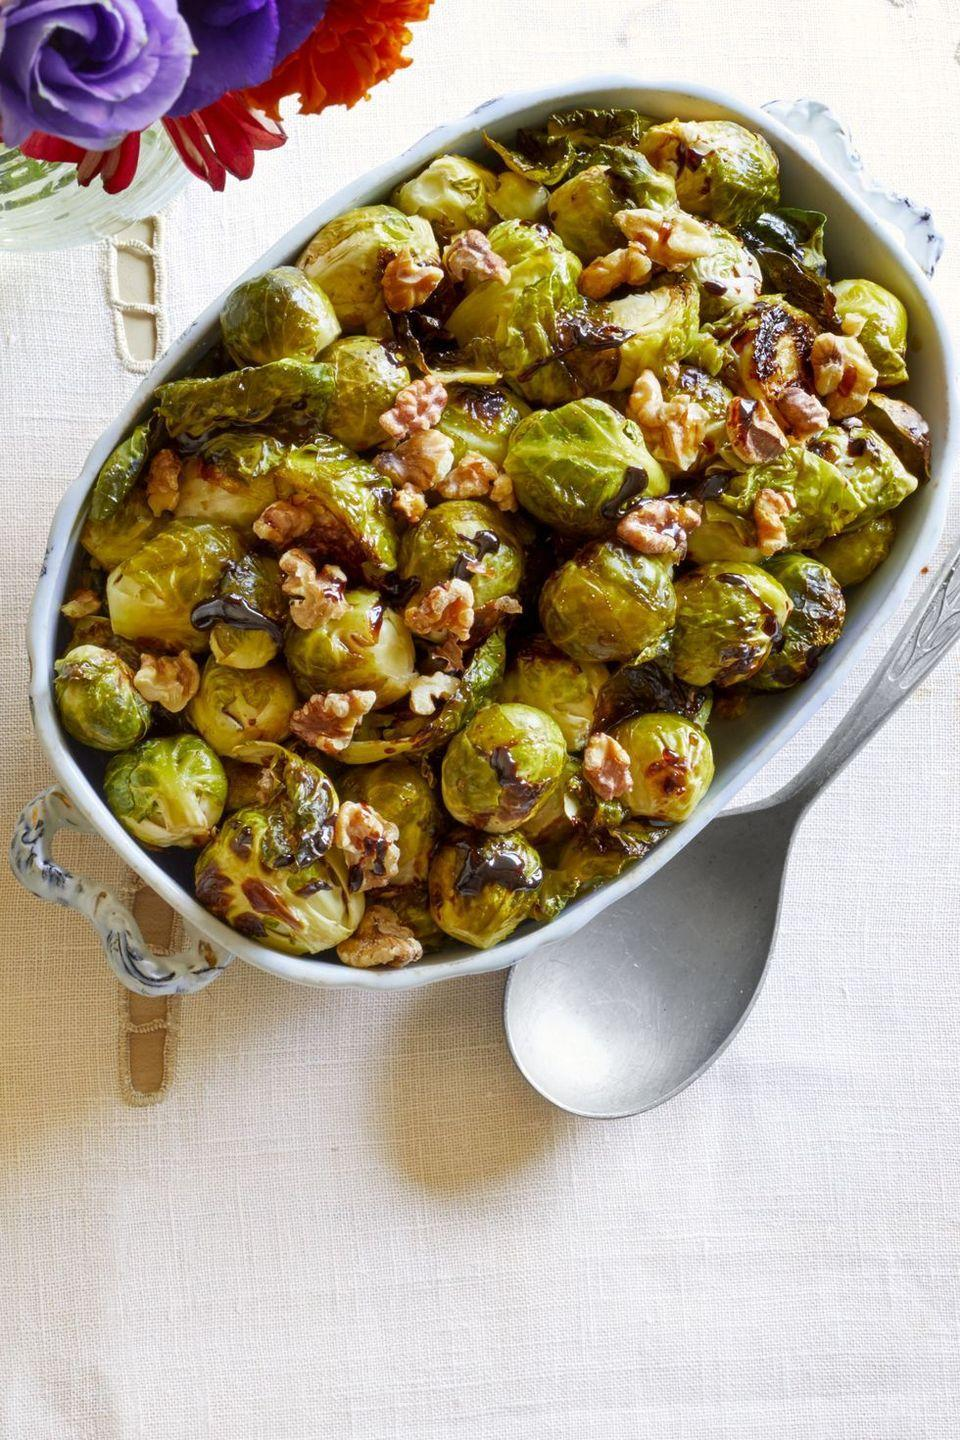 """<p>Boil balsamic vinegar with sugar and drizzle over roasted sprouts for a super-simple side. And don't forget the toasted walnuts!</p><p><strong><a href=""""https://www.thepioneerwoman.com/food-cooking/recipes/a33249425/brussels-sprouts-with-balsamic-reduction-walnuts-recipe/"""" rel=""""nofollow noopener"""" target=""""_blank"""" data-ylk=""""slk:Get Ree's recipe."""" class=""""link rapid-noclick-resp"""">Get Ree's recipe.</a></strong></p>"""